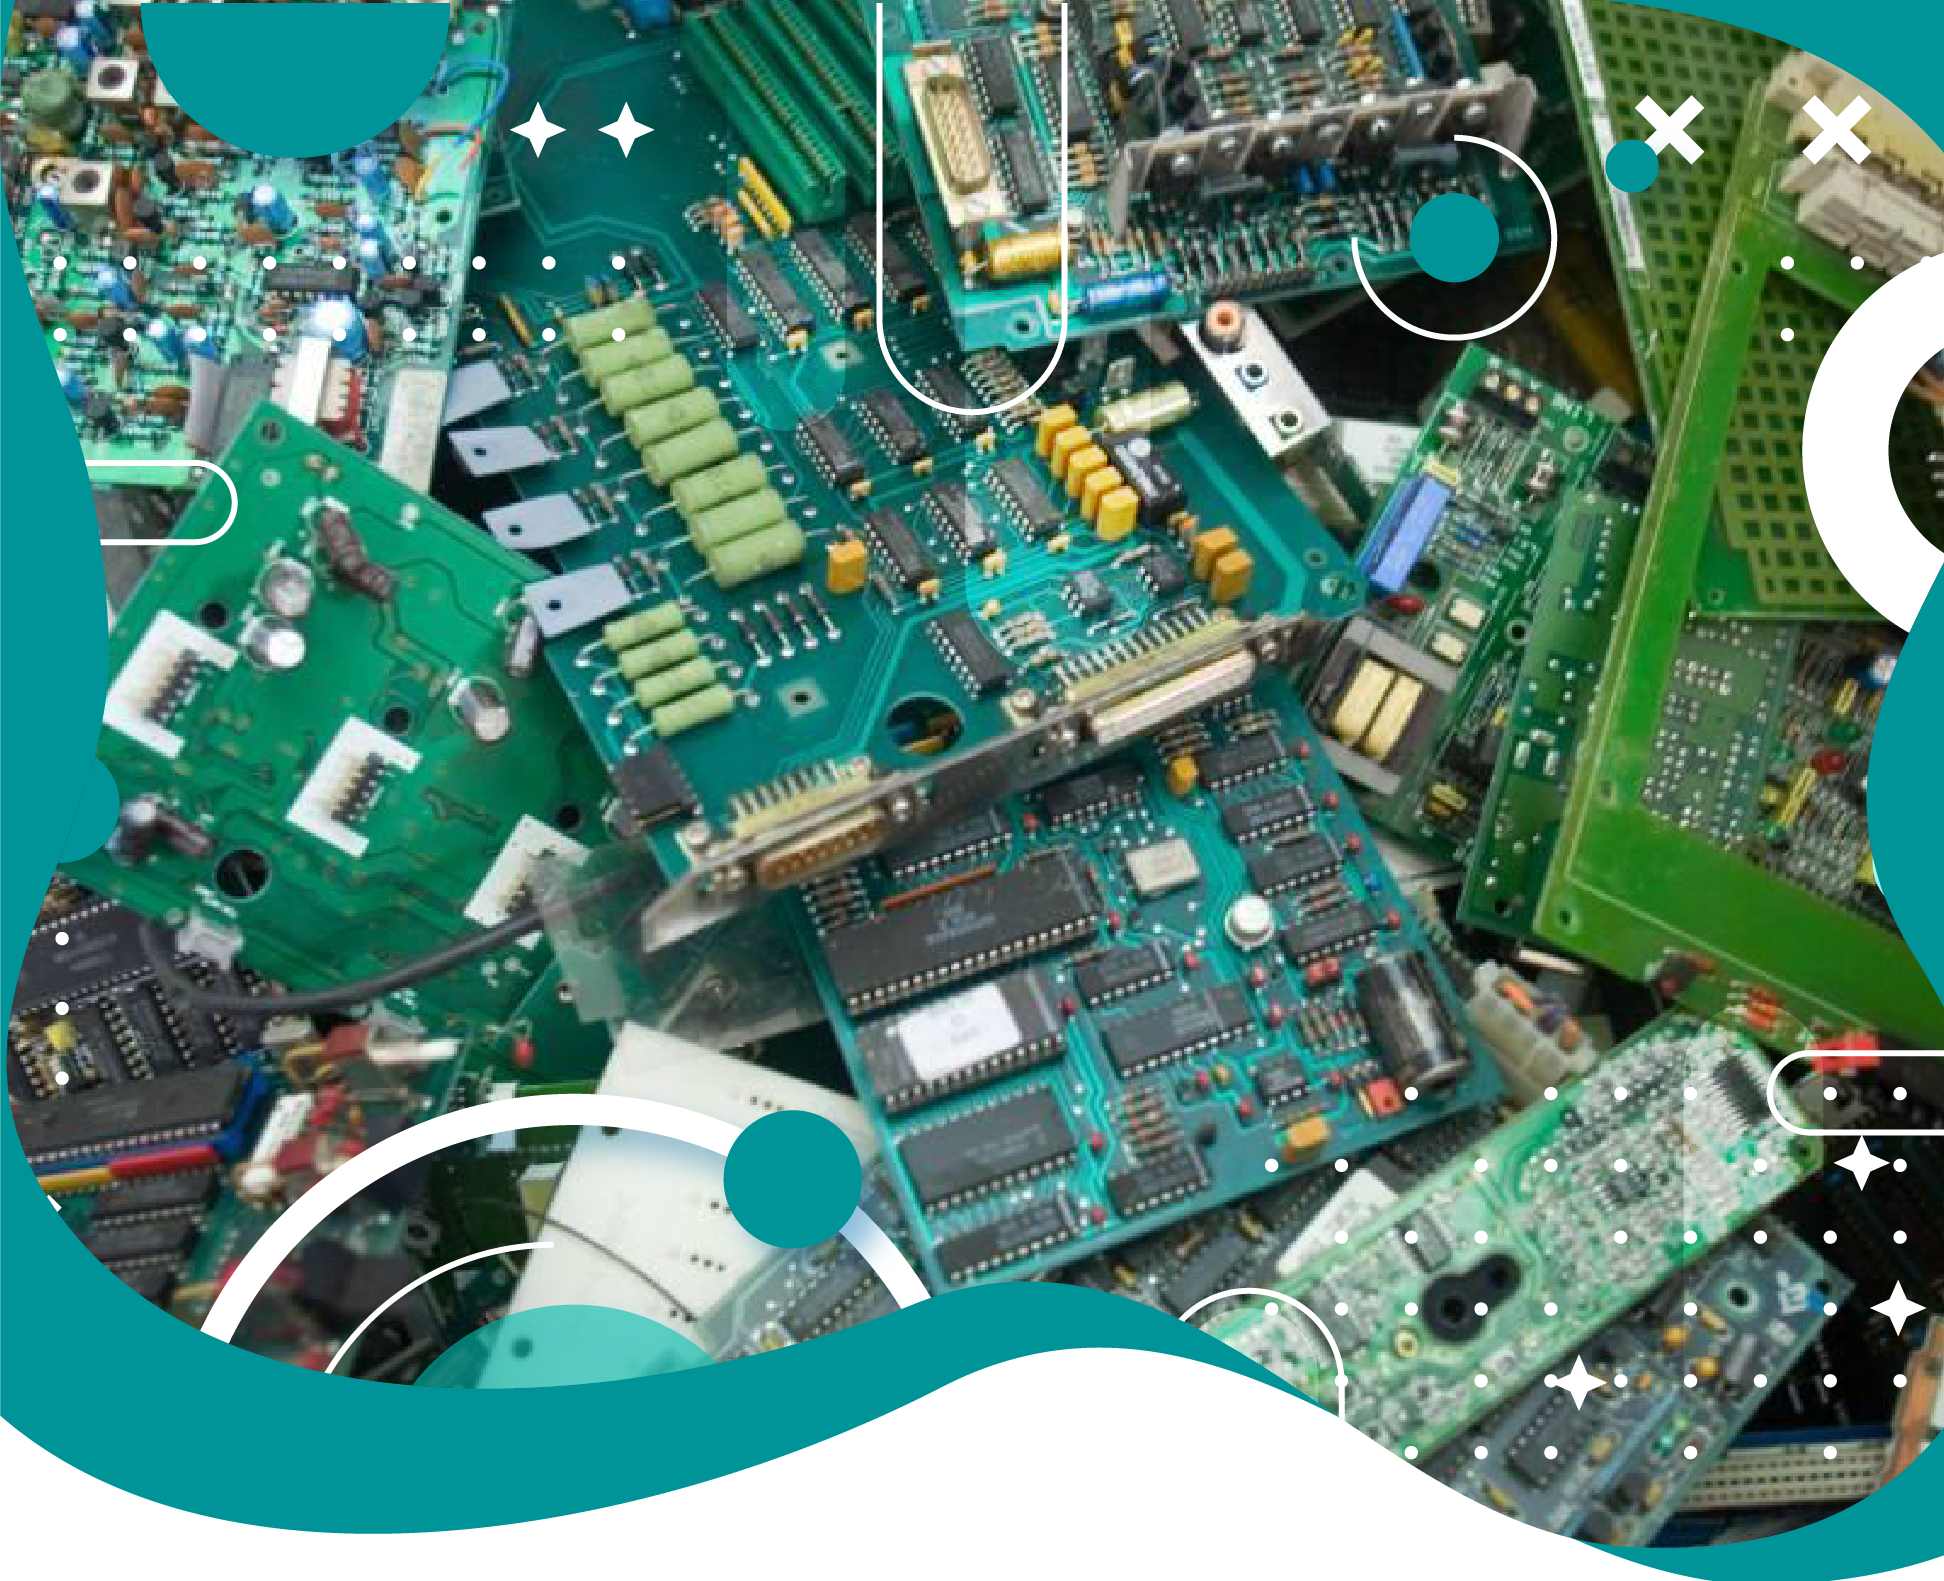 E-nnovating Workshop Series: Building an Extended Producer Responsibility (EPR) Scheme for Waste Electrical and Electronic Equipment (WEEE) in Quito